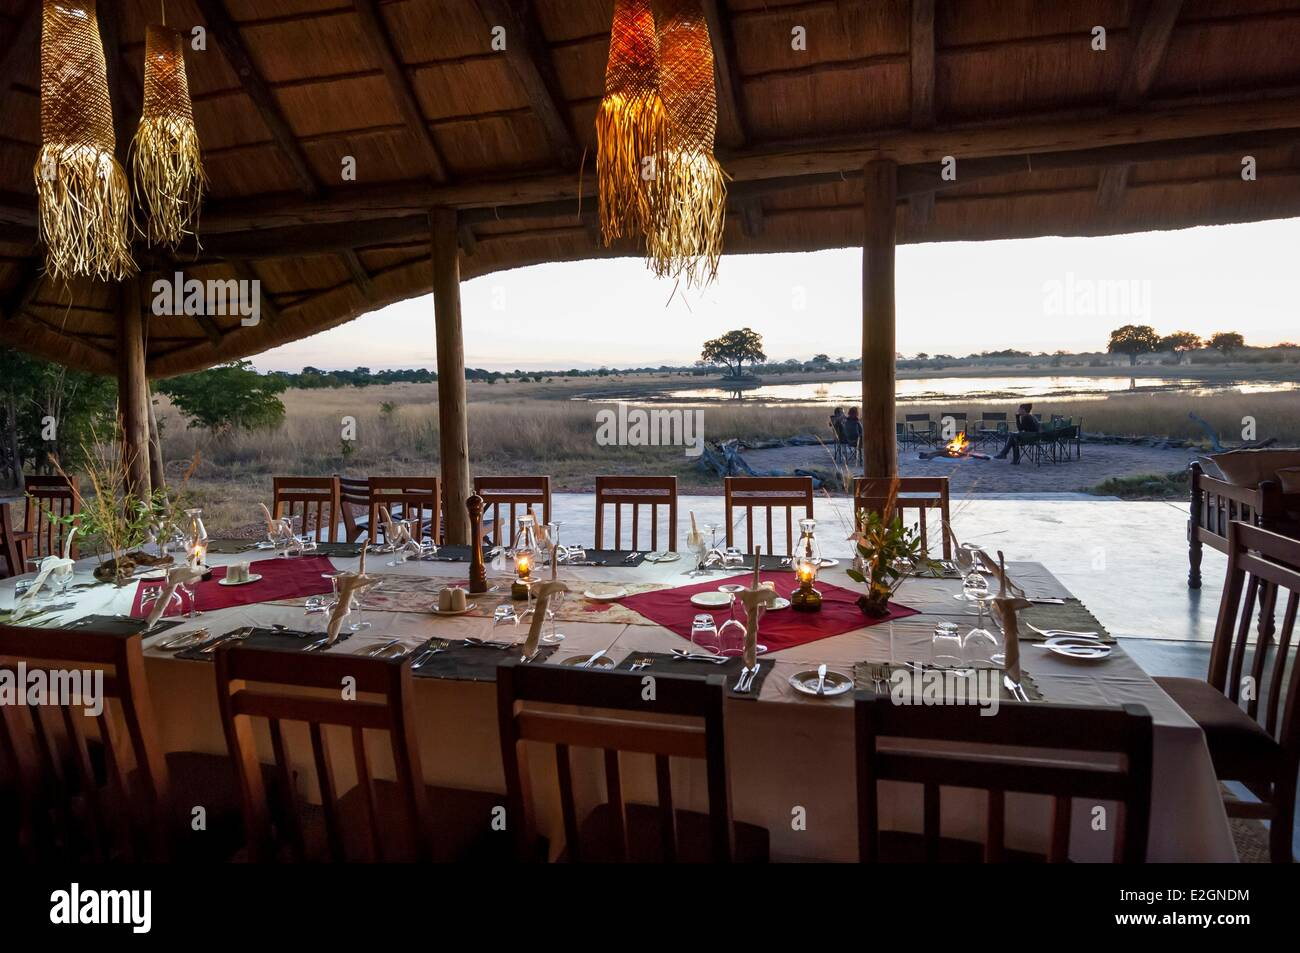 Zimbabwe Matabeleland North Province Hwange National Park Shuba Plains Camp Hwange reception lounge and restaurant - Stock Image